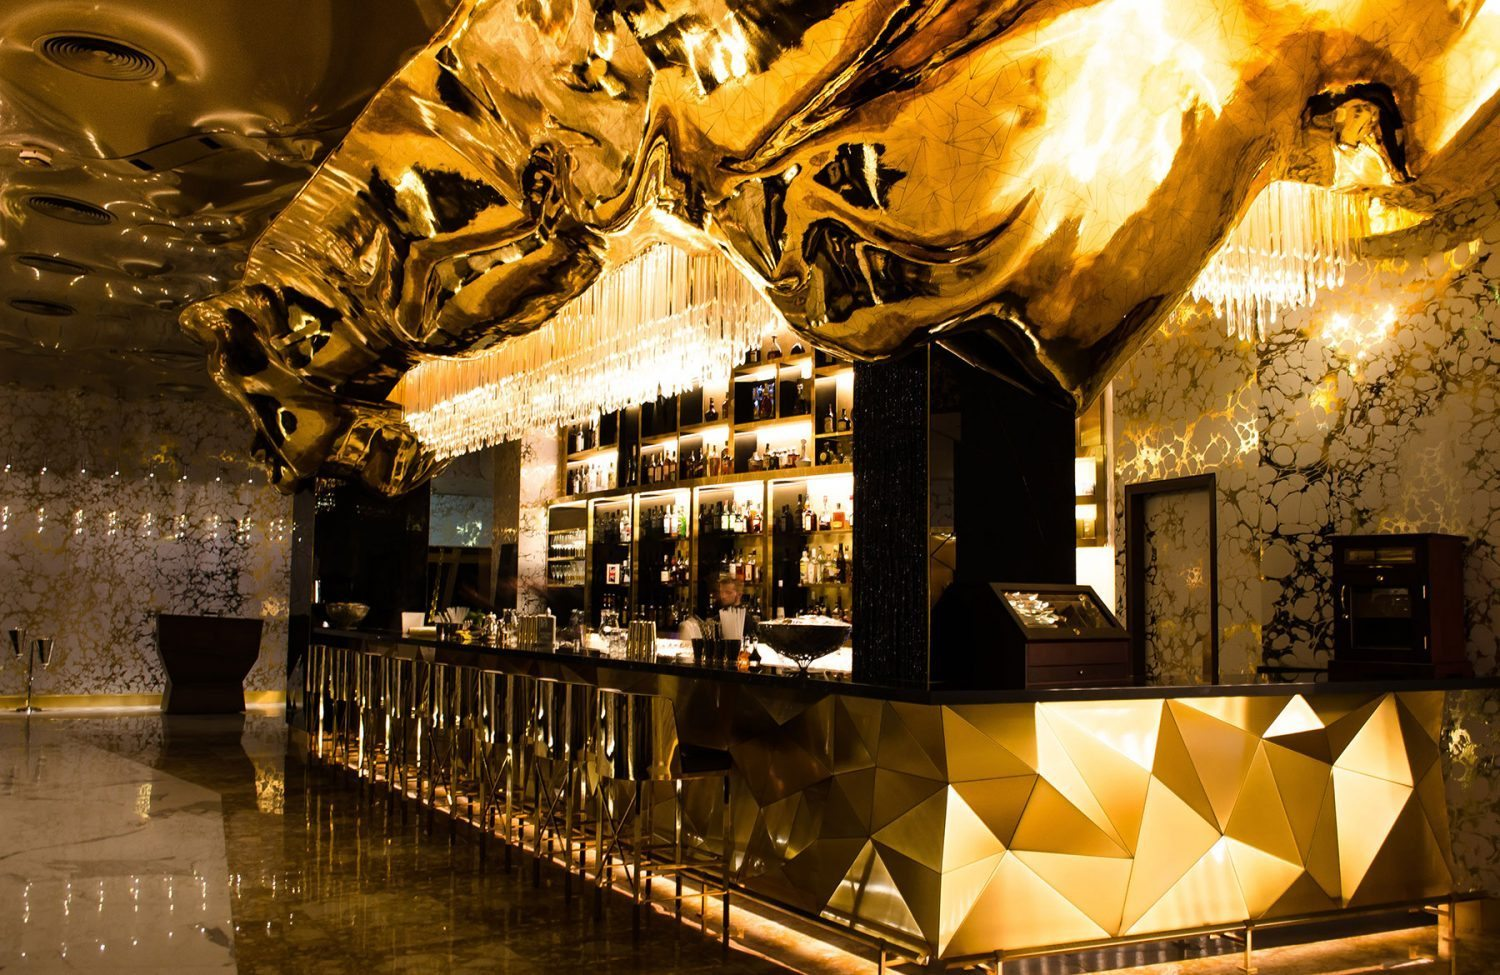 al arab gold in dubai burj inside the